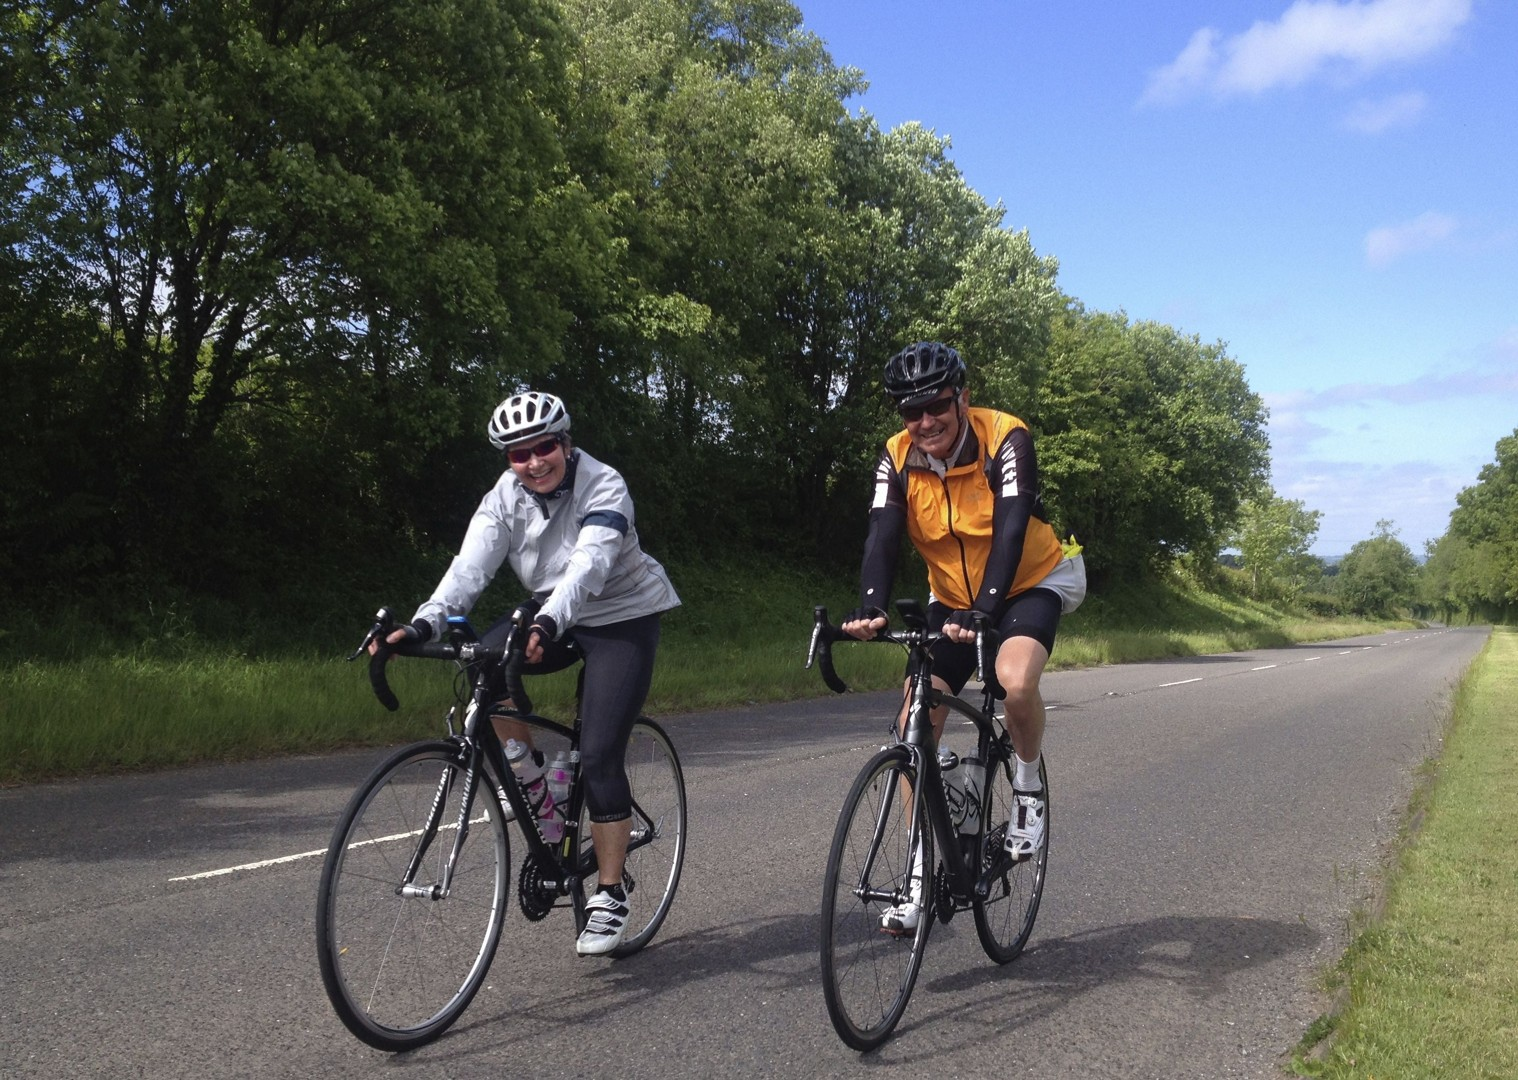 LEJOG2.jpg - UK - Land's End to John O'Groats Classic (16 days) - Guided Road Cycling Holiday - Road Cycling